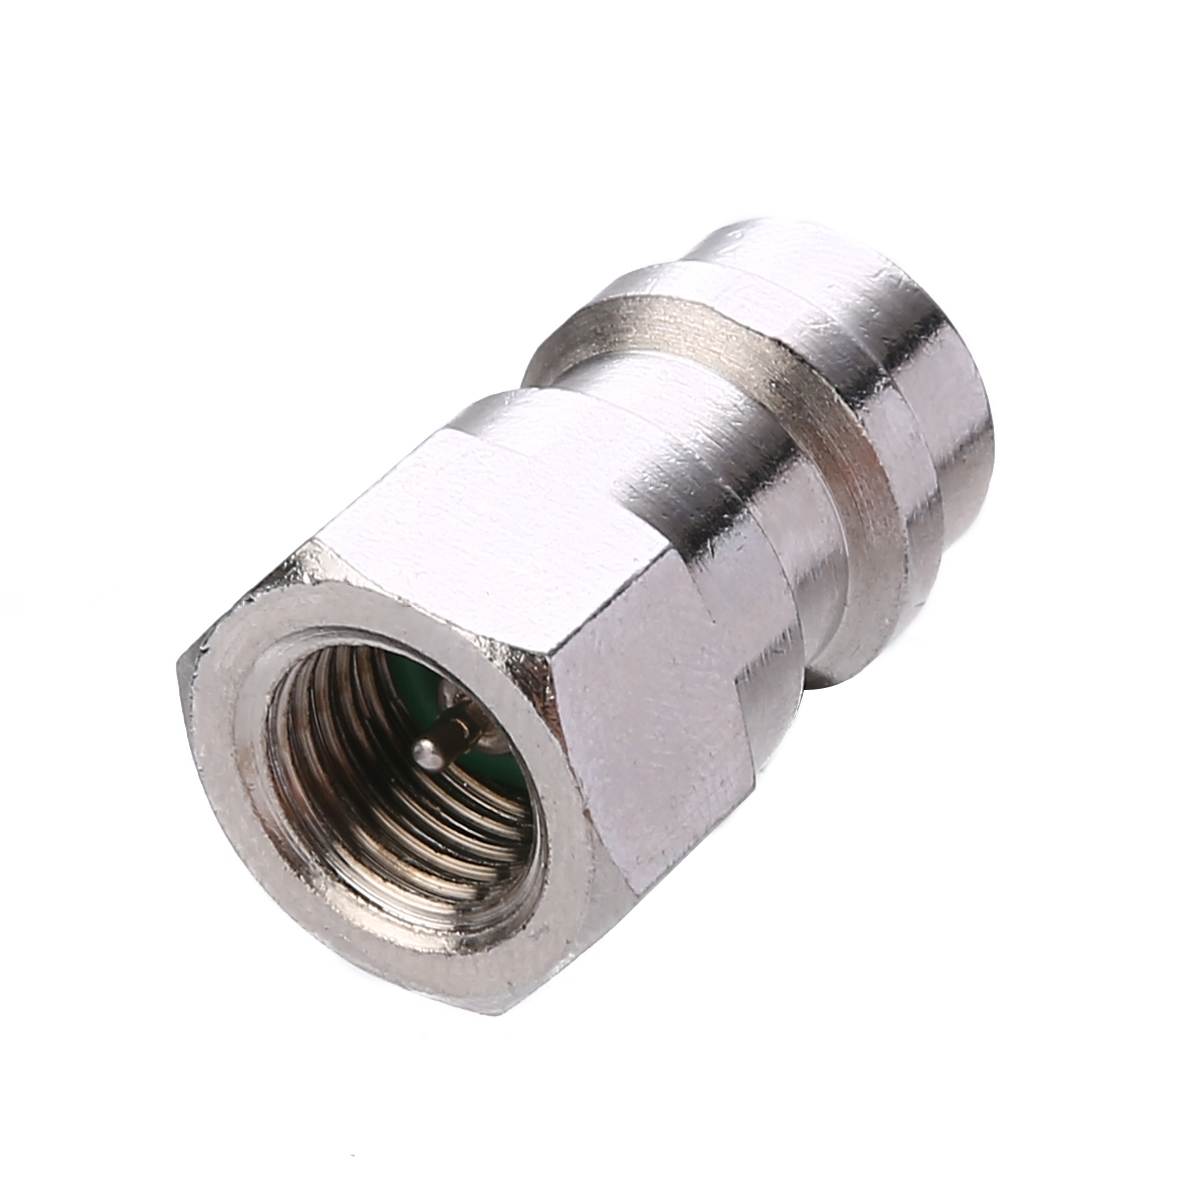 1set AC Fitting Port Adapter Retrofit R12 To Accept R134 High Low Double-Head Valve Core Side A/C Retrofits Fittings Tool